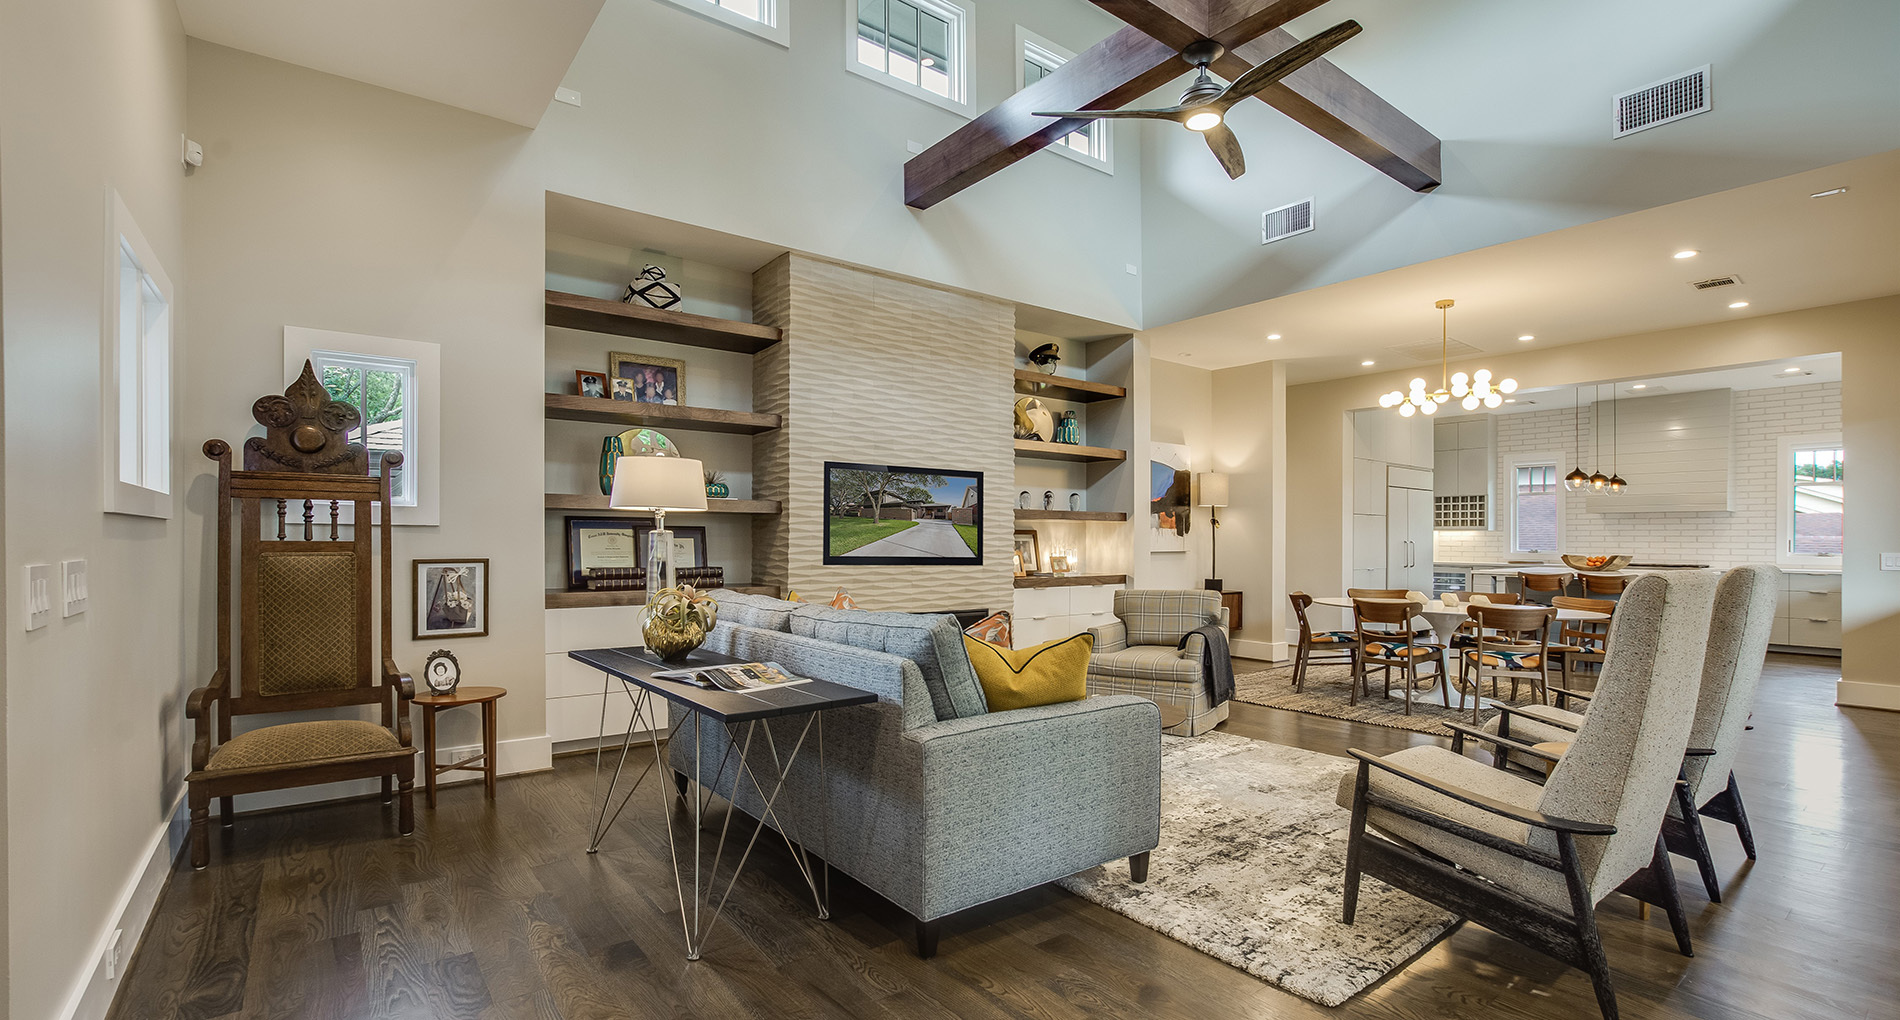 living room with built in shelving high ceilings cozy decor